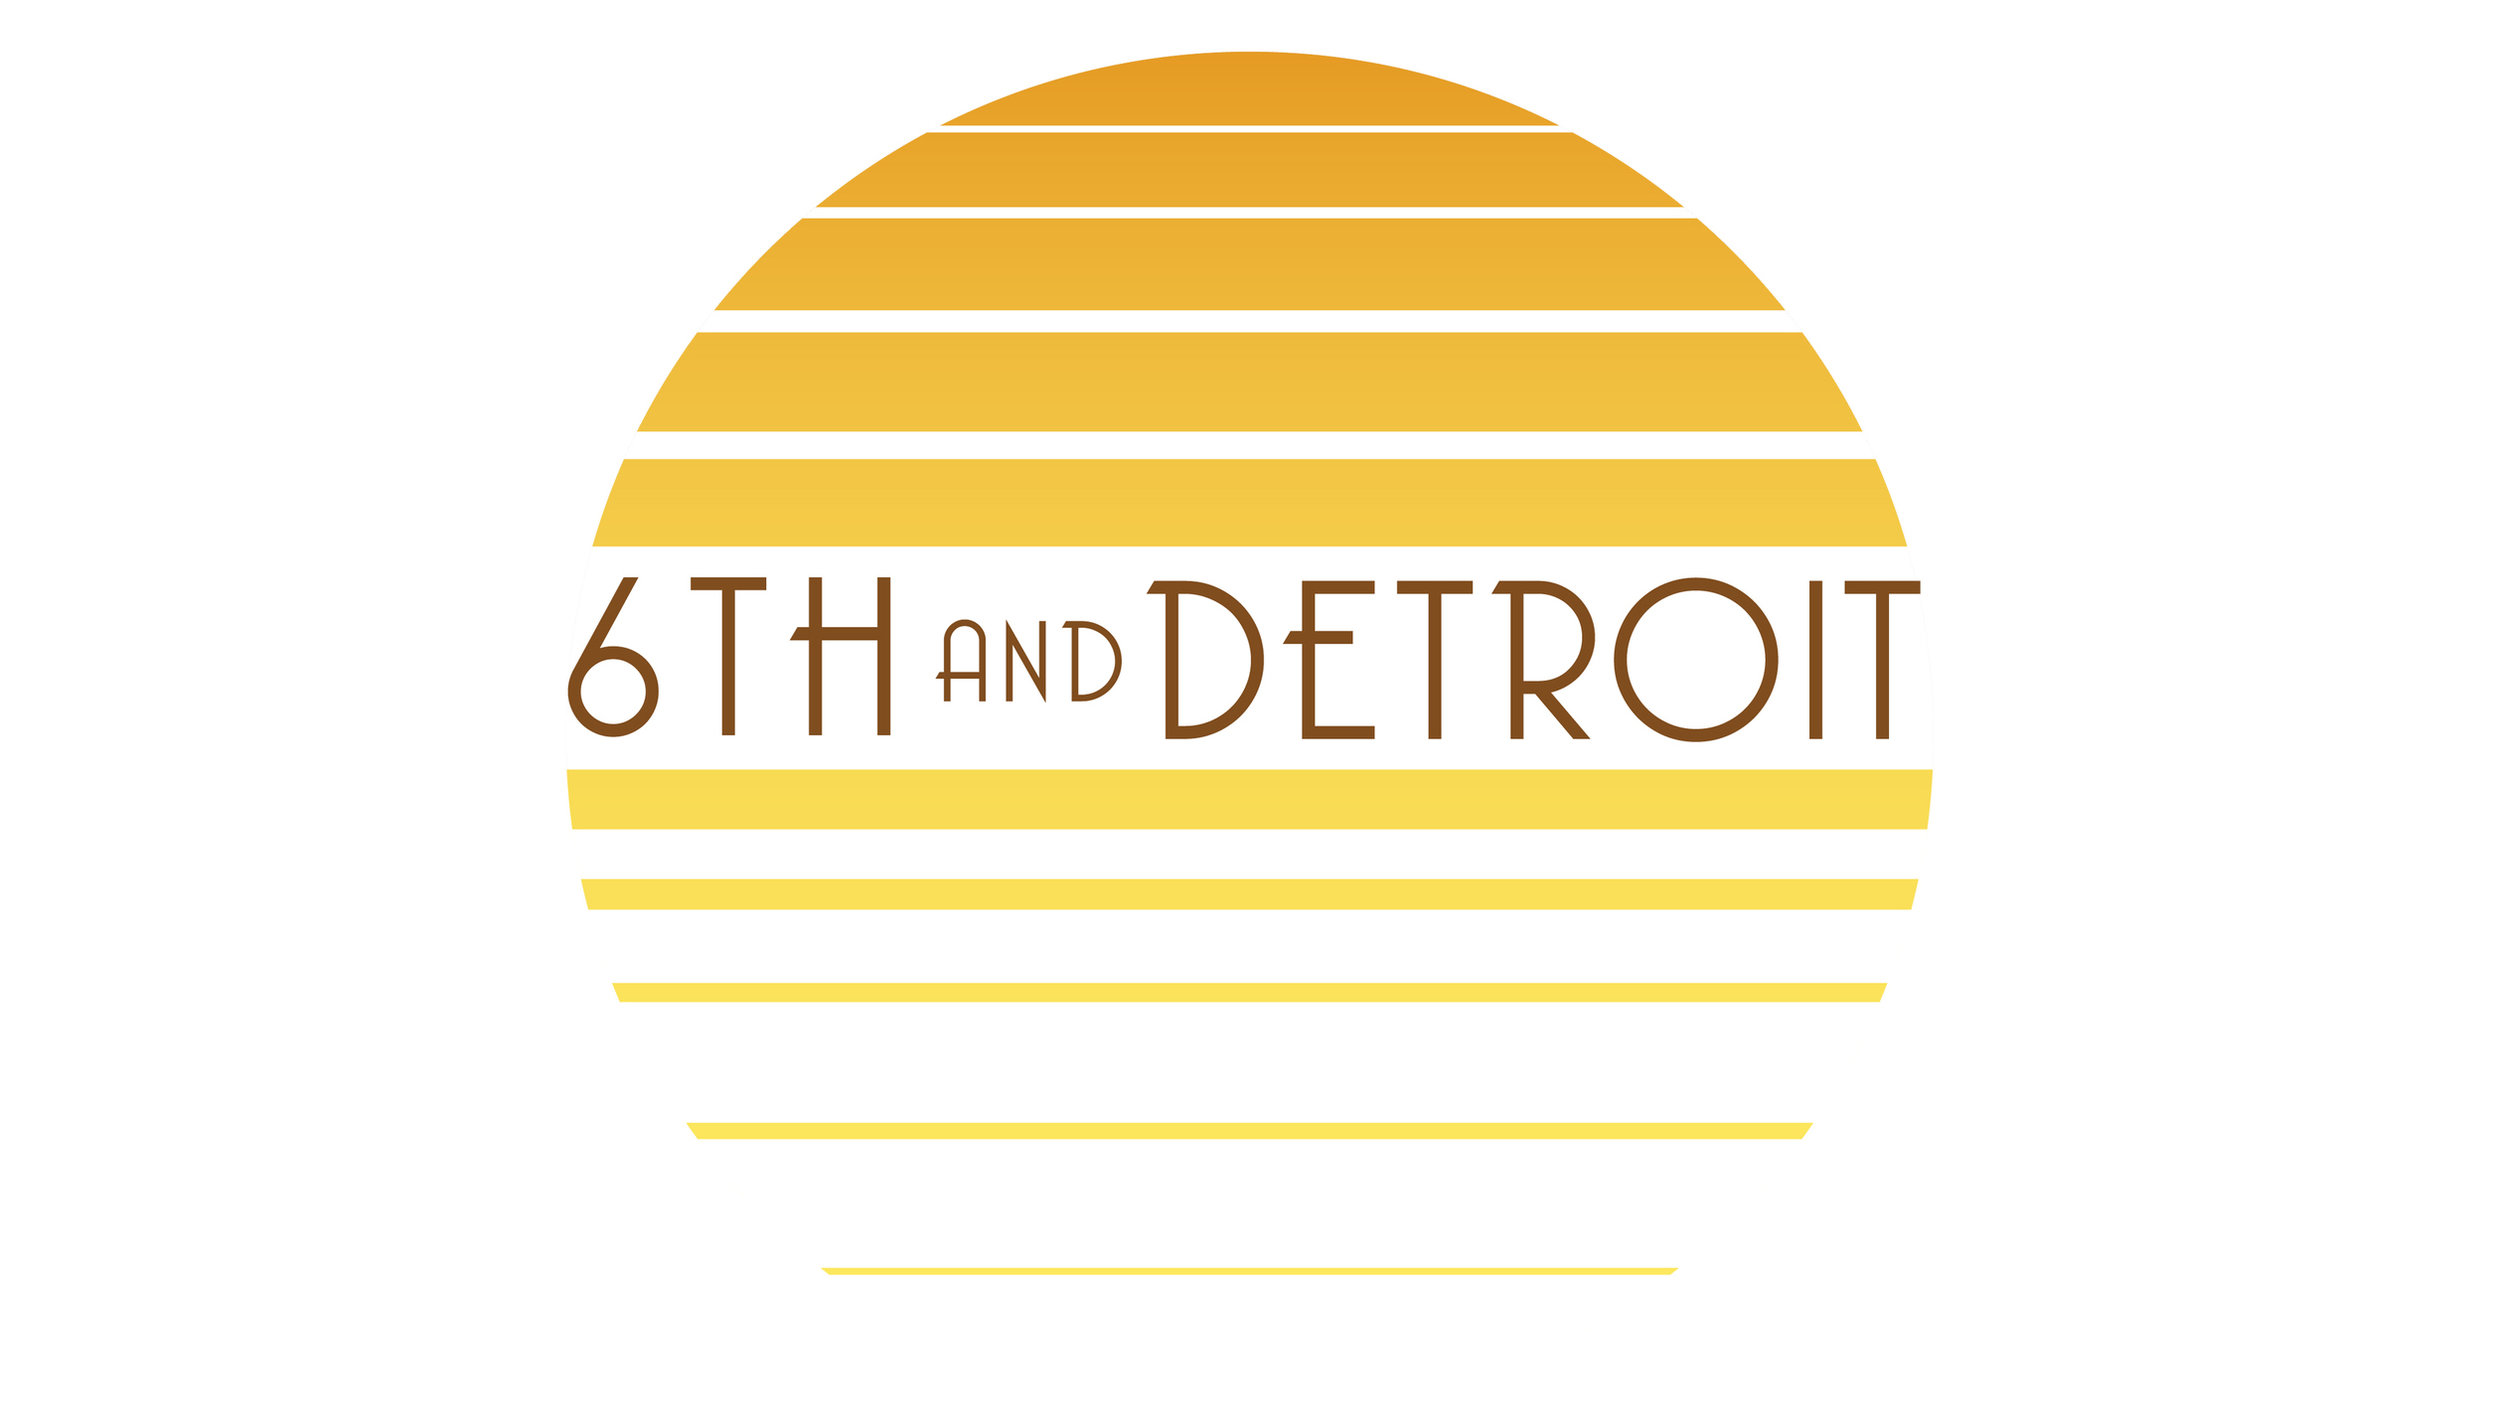 6th-and-Detroit-logo_2400-square copy.jpg